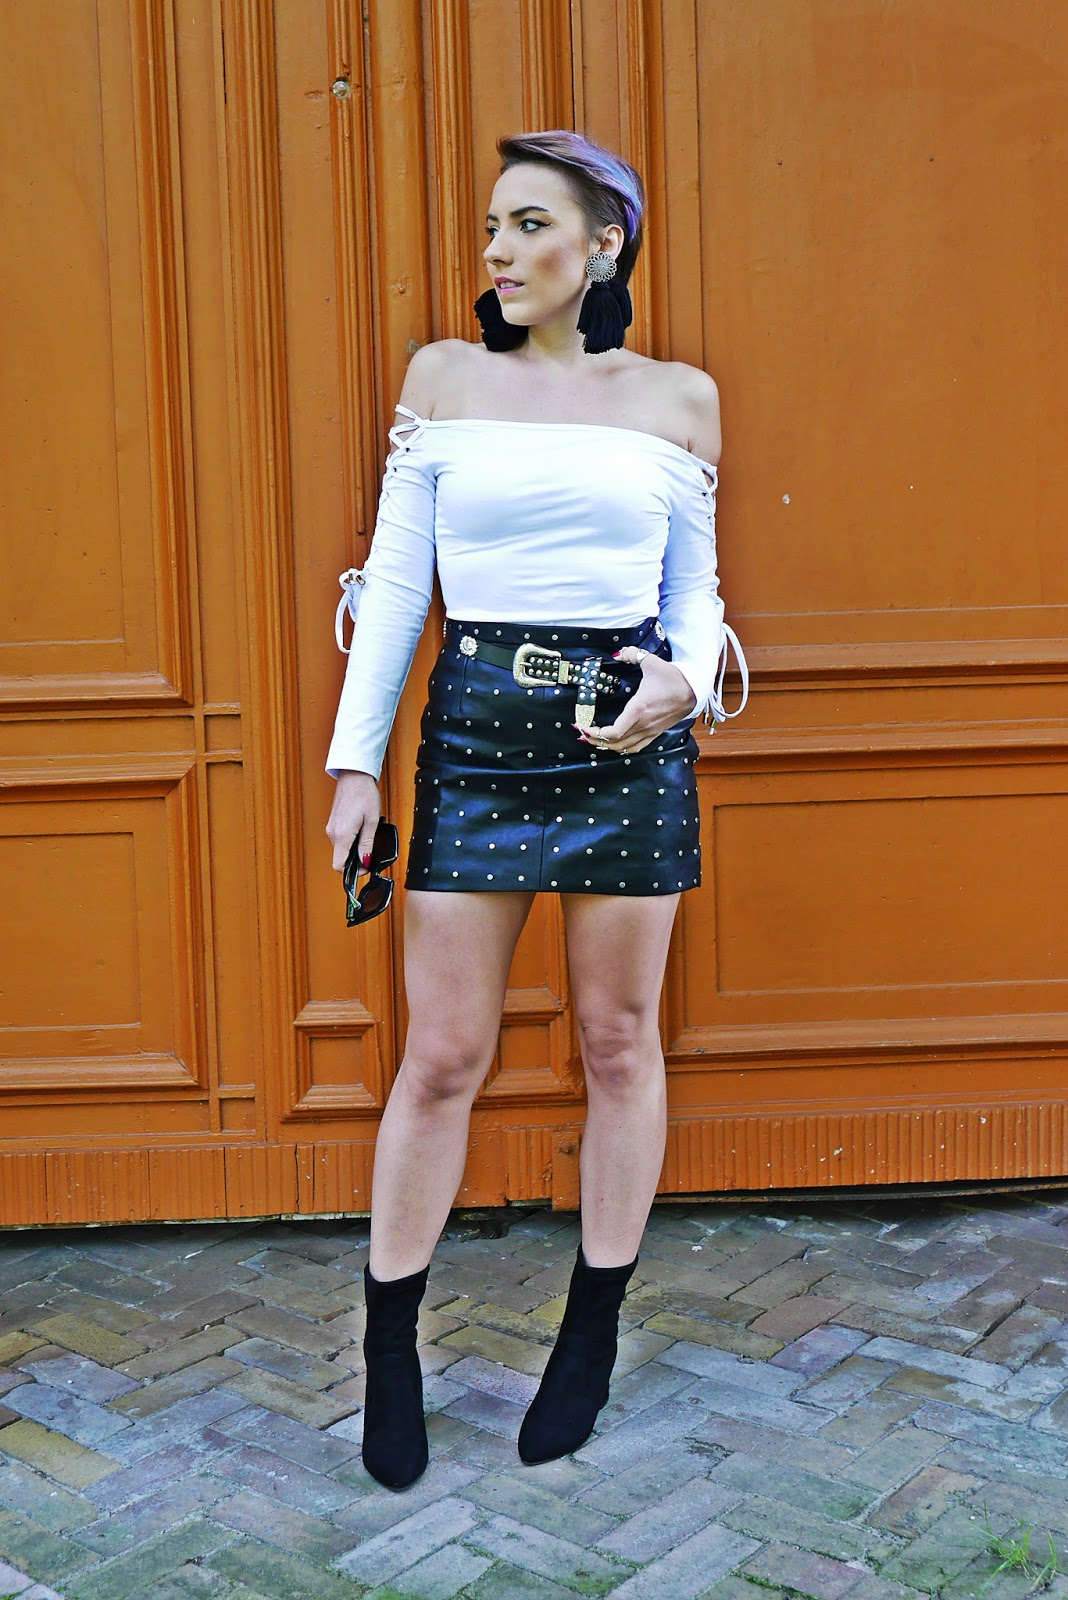 4_flower_sunglass_leather_skirt_socks_shoes_belt_white_top_karyn_blog_modowy_110917a